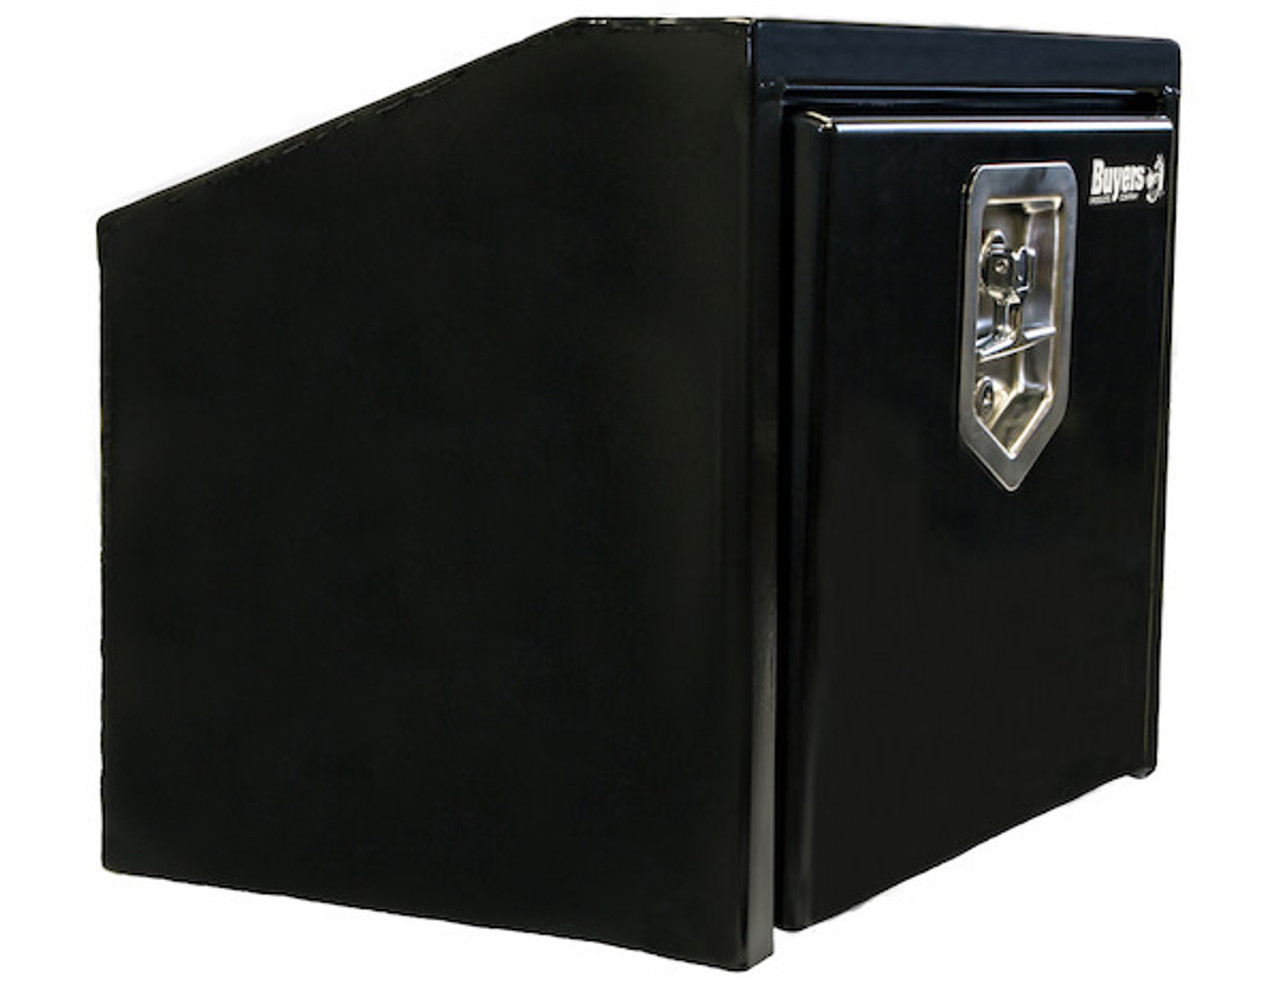 """1703352 BUYERS PRODUCTS BLACK STEEL UNDERBODY TRUCK TOOLBOX WITH SLANTED BACK 14""""HX12""""DX24""""W"""